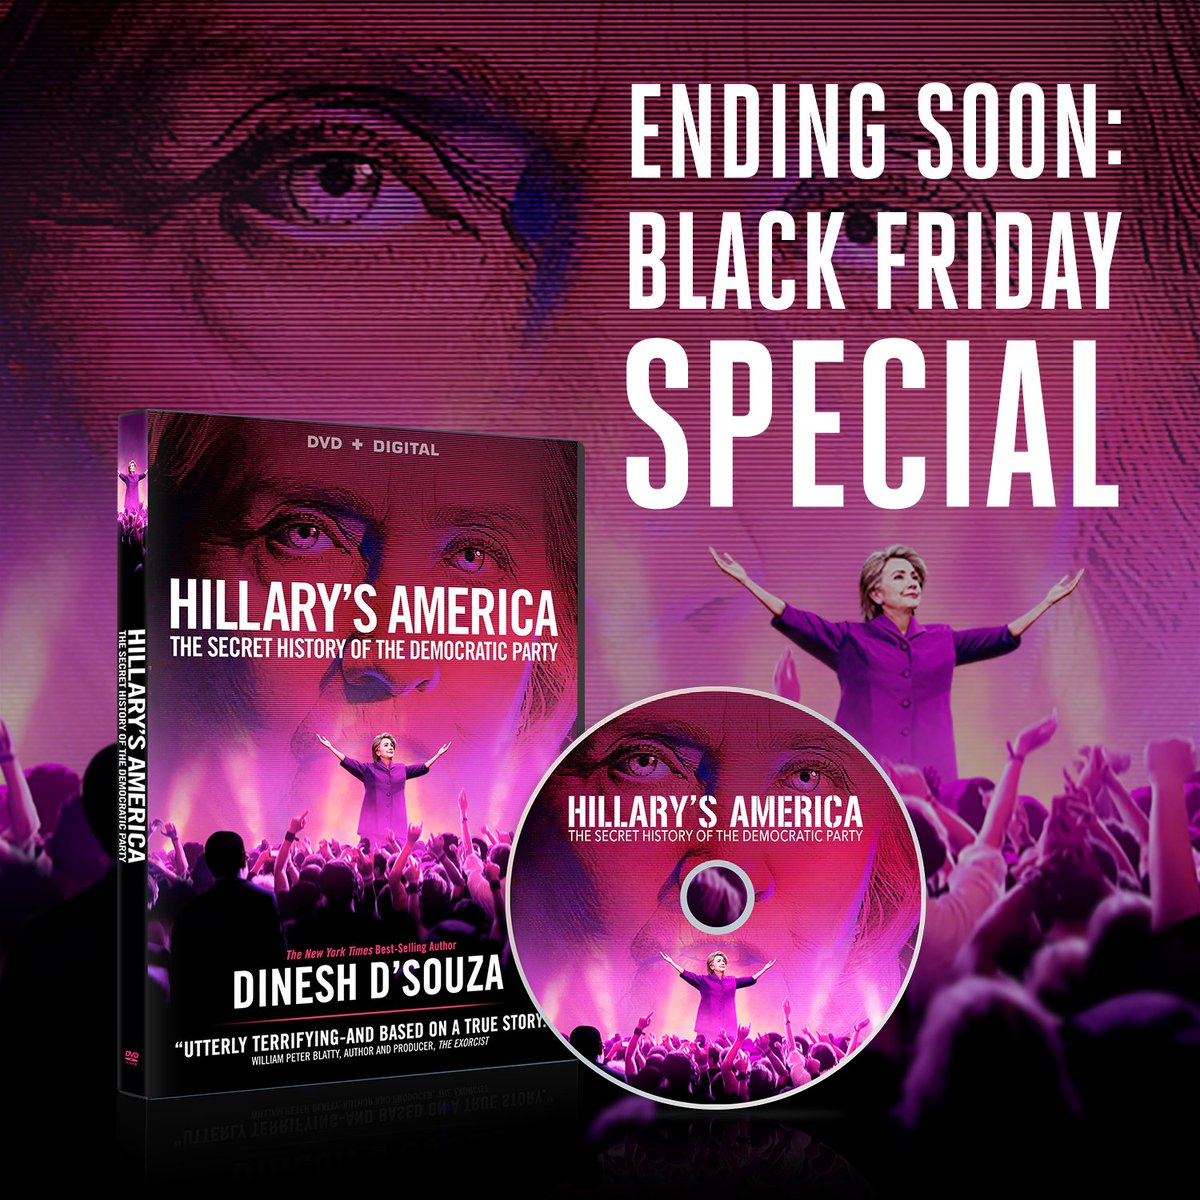 Dinesh D Souza On Twitter Ending Soon Claim Your Special Blackfriday Offer On This Signed Movie Combo Pack Https T Co G0hbvrpxup